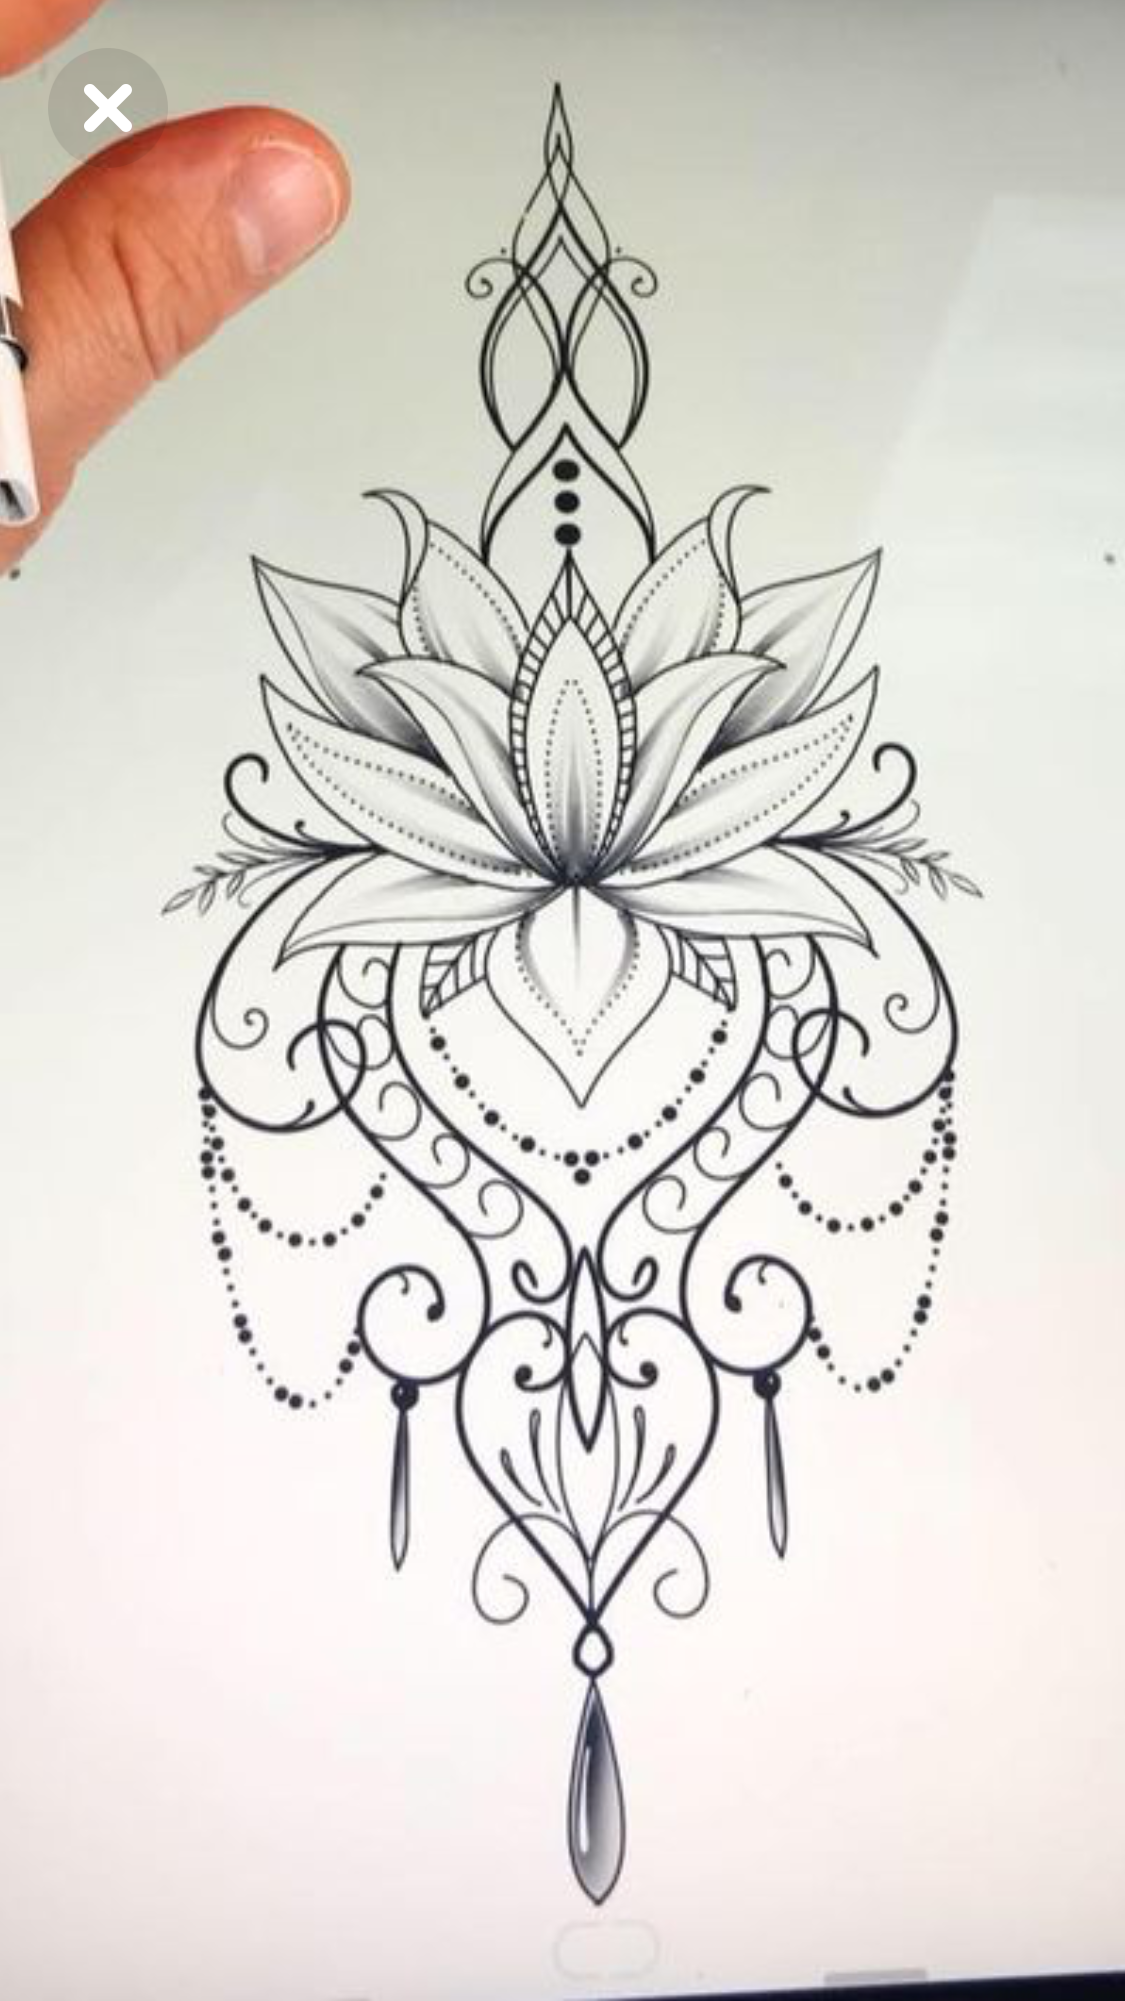 Mandala Design Tattoo Tattoos Tatouage Dessin Tatouage Idee Tattoo